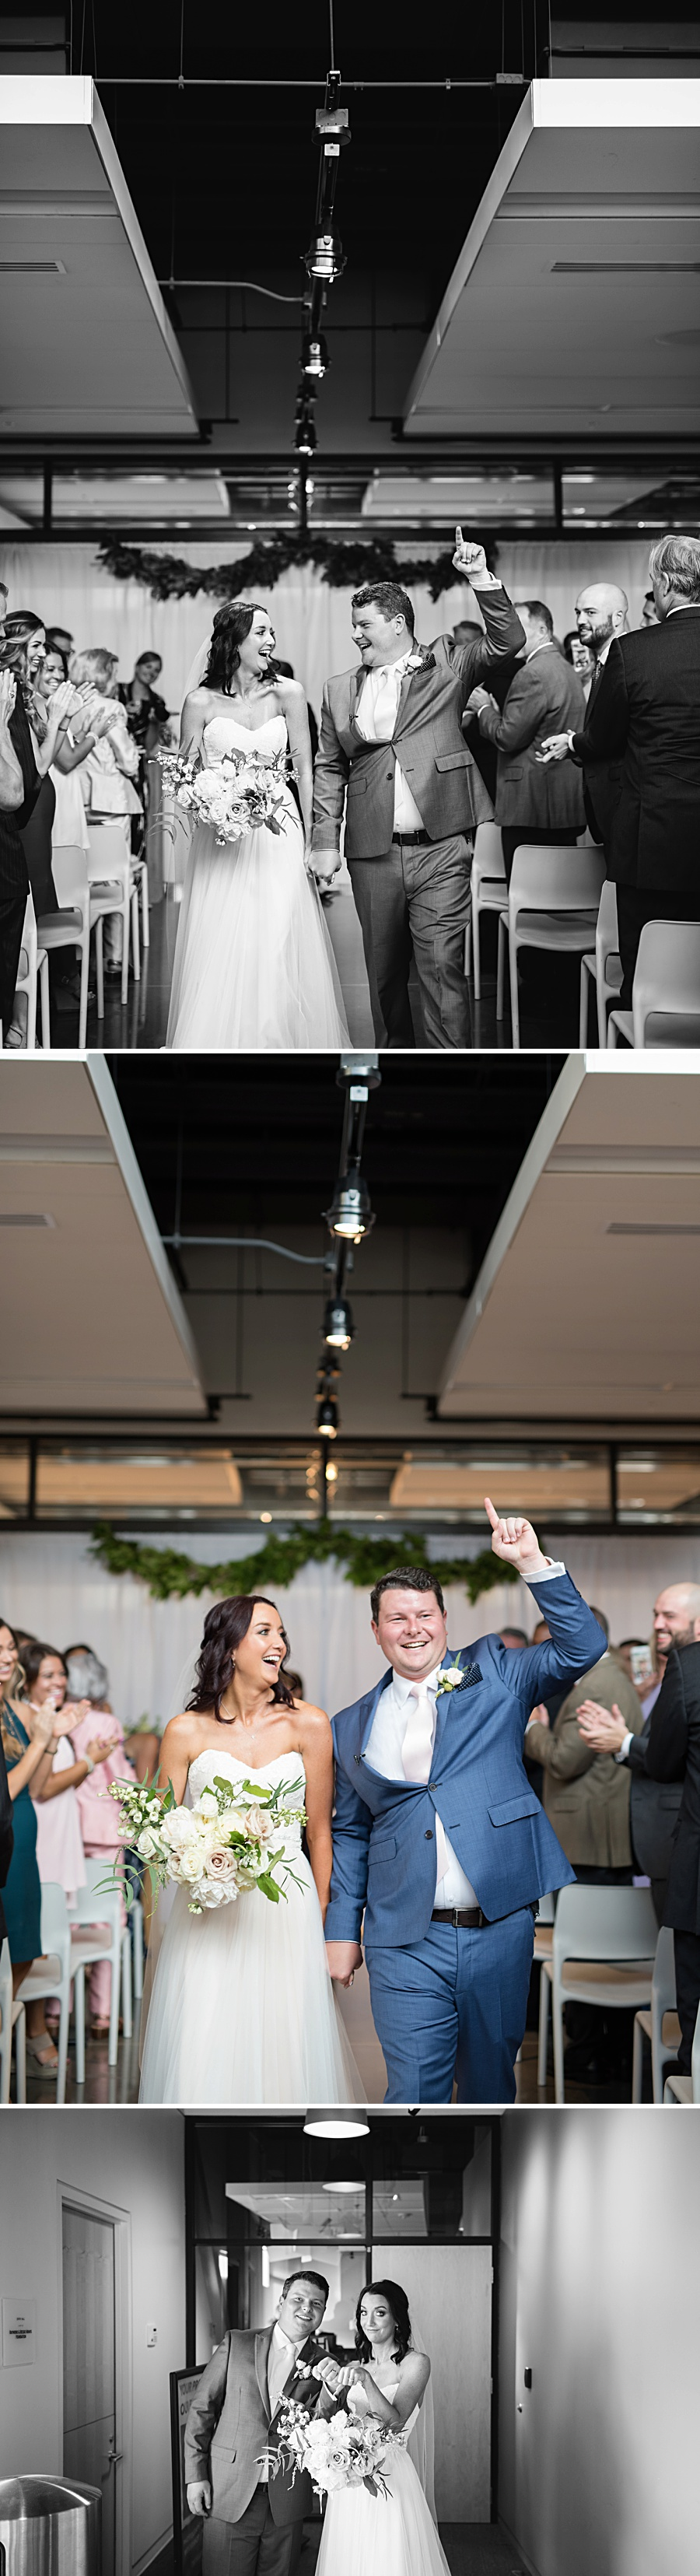 tulsa-wedding-photographer-oklahoma-brides